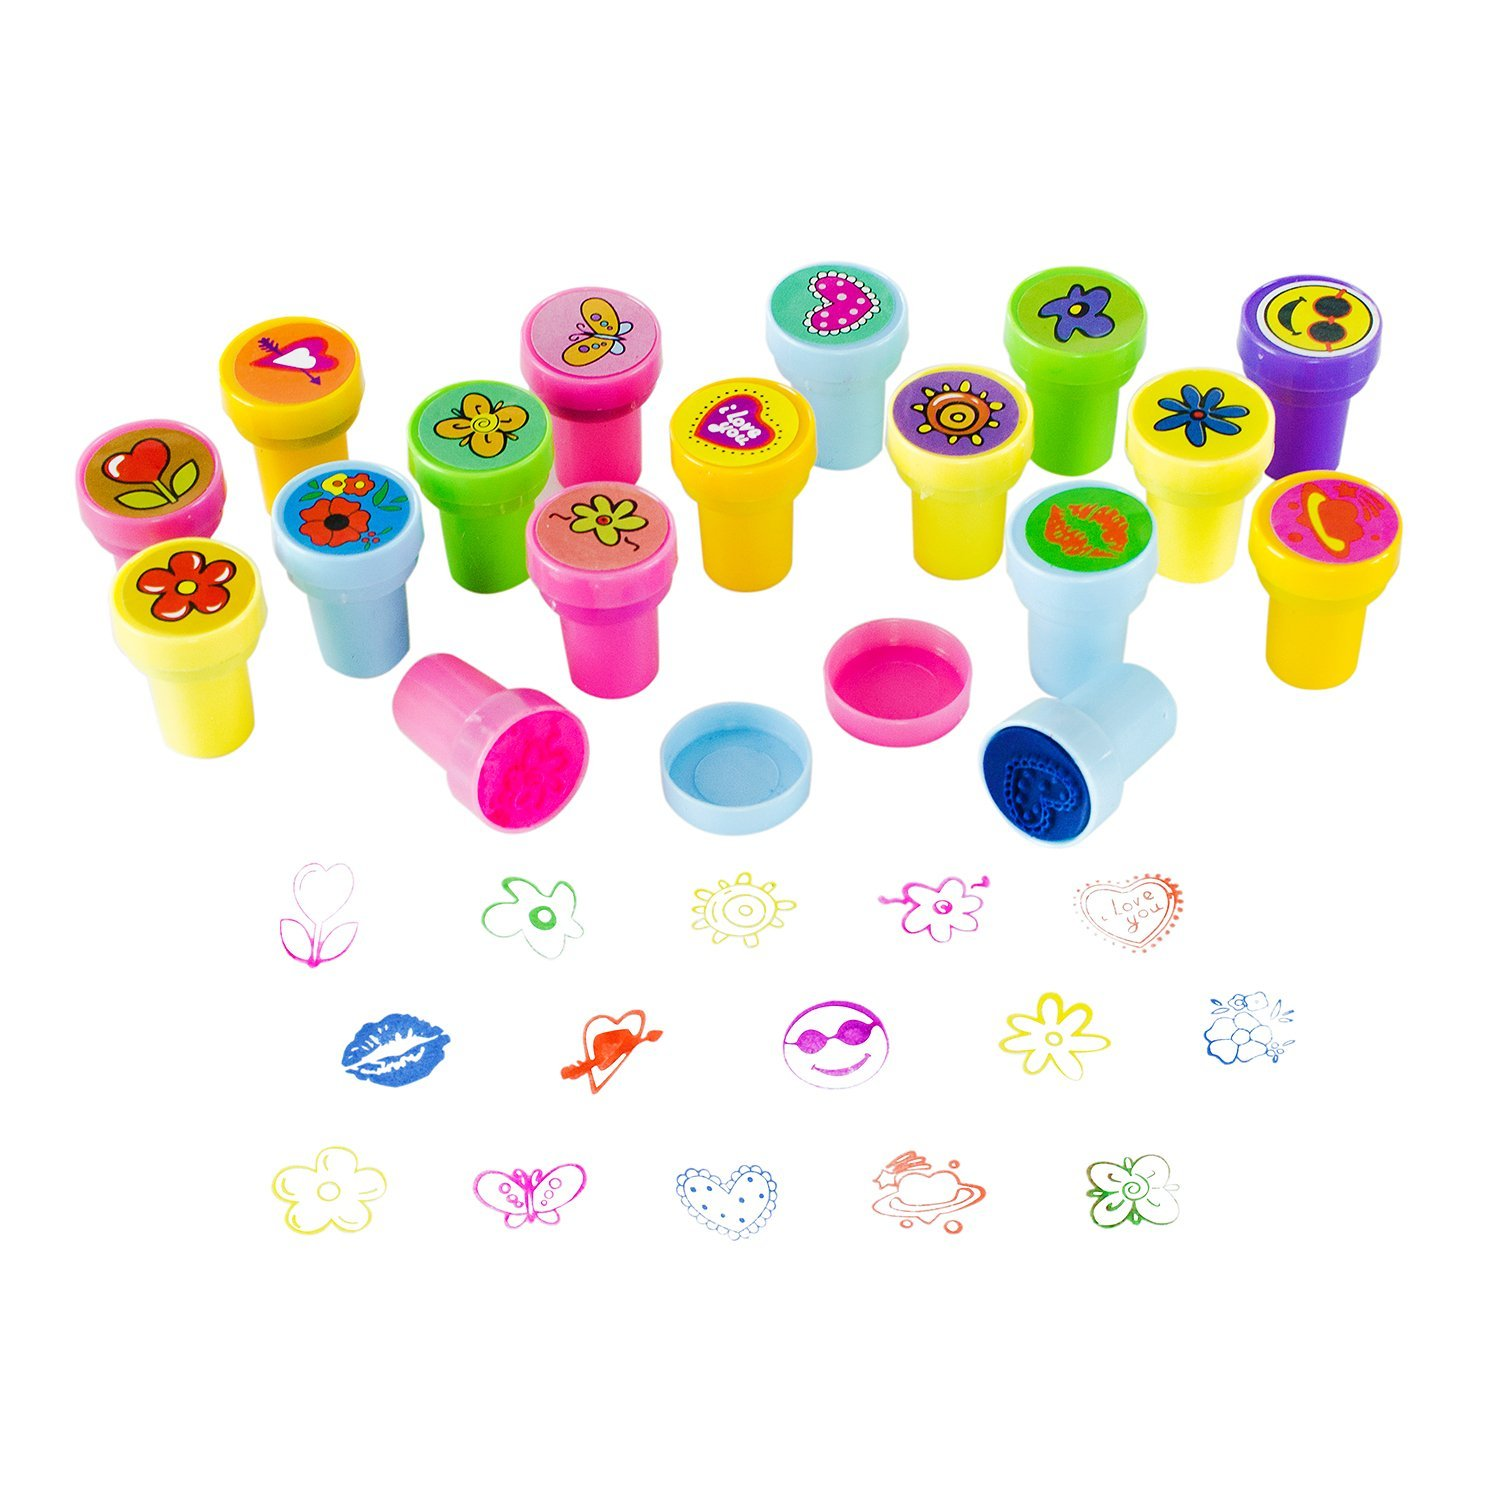 Assorted Mini Colorful Rubber Hearts, Smiley Faces, Flower Design Stamps for Children Party Favor Gifts (50 Pack) by Super Z Outlet